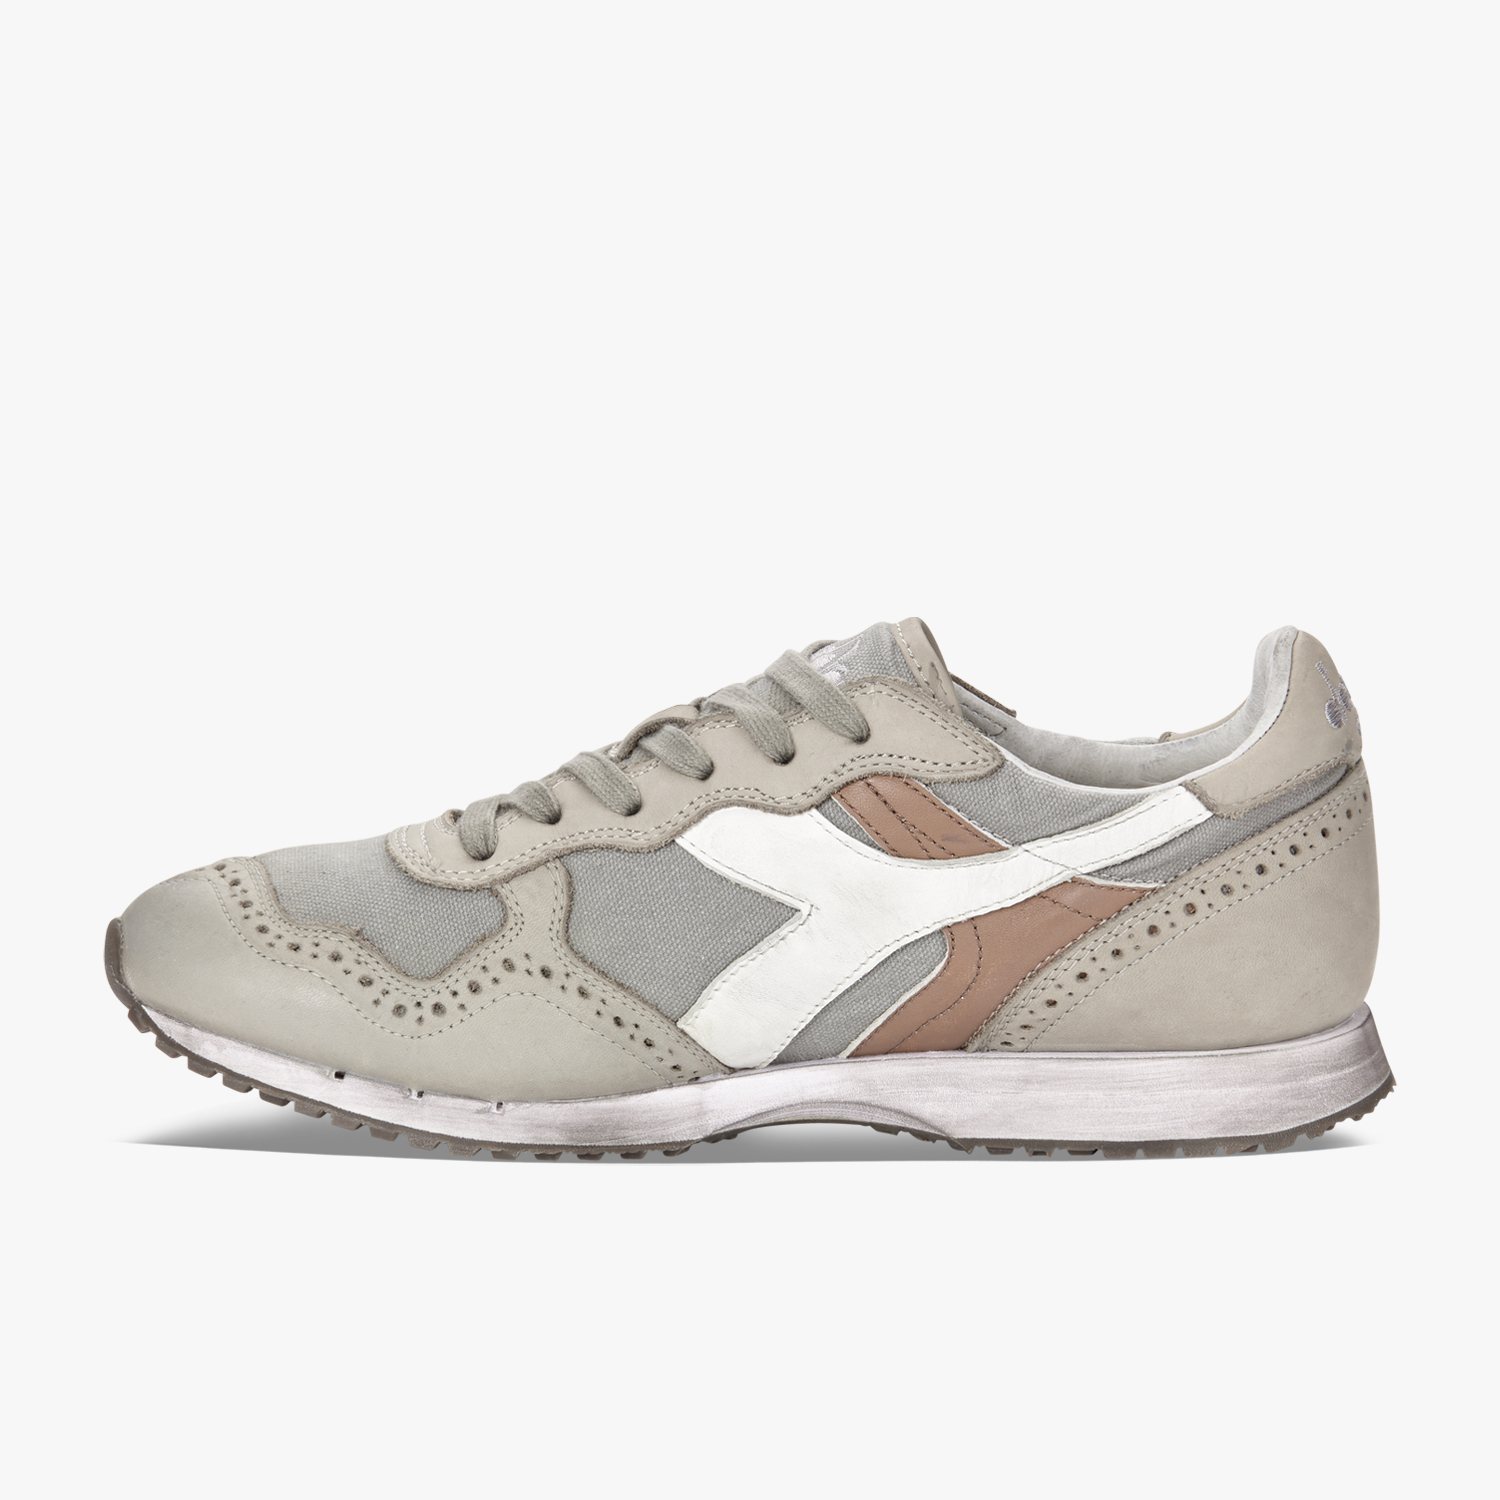 TRIDENT C DYED BROGUE - FOOTWEAR - Low-tops & sneakers Diadora SniQzG7